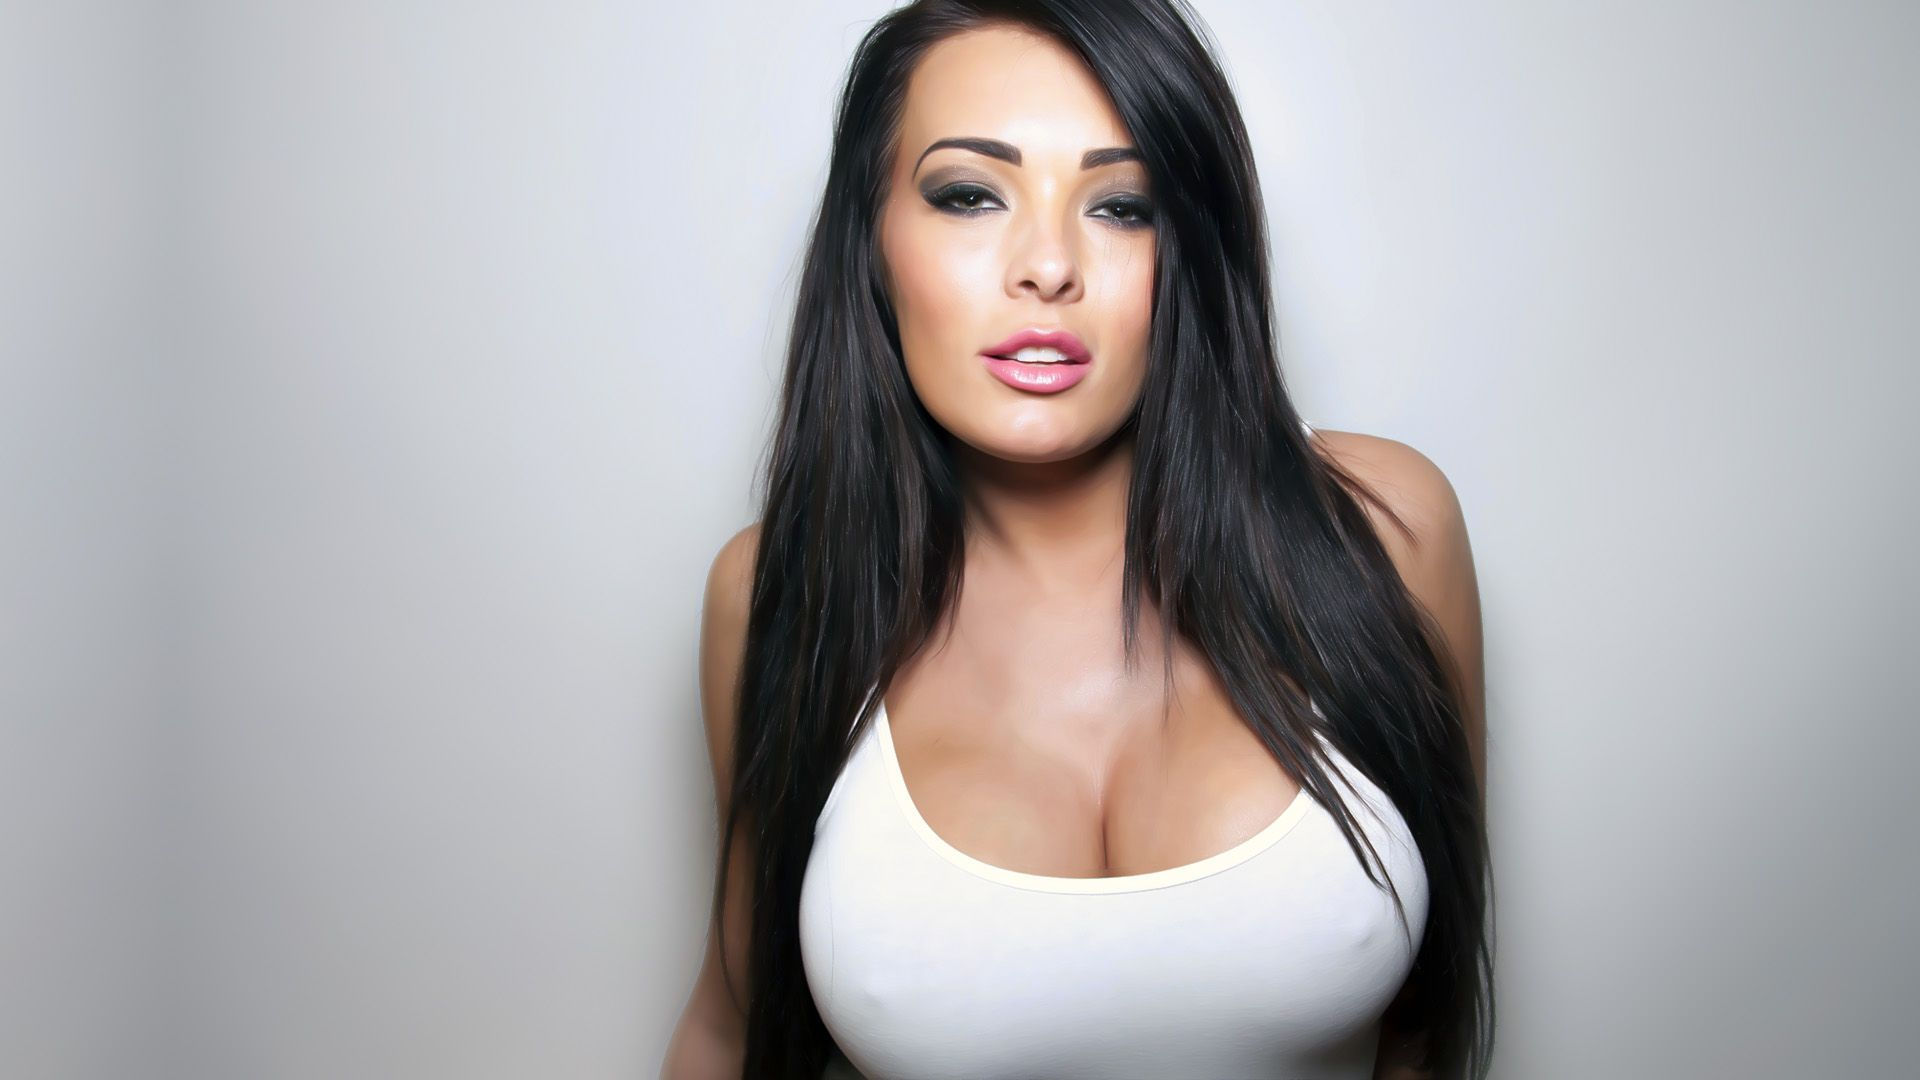 criticising angela white threesome remarkable, and